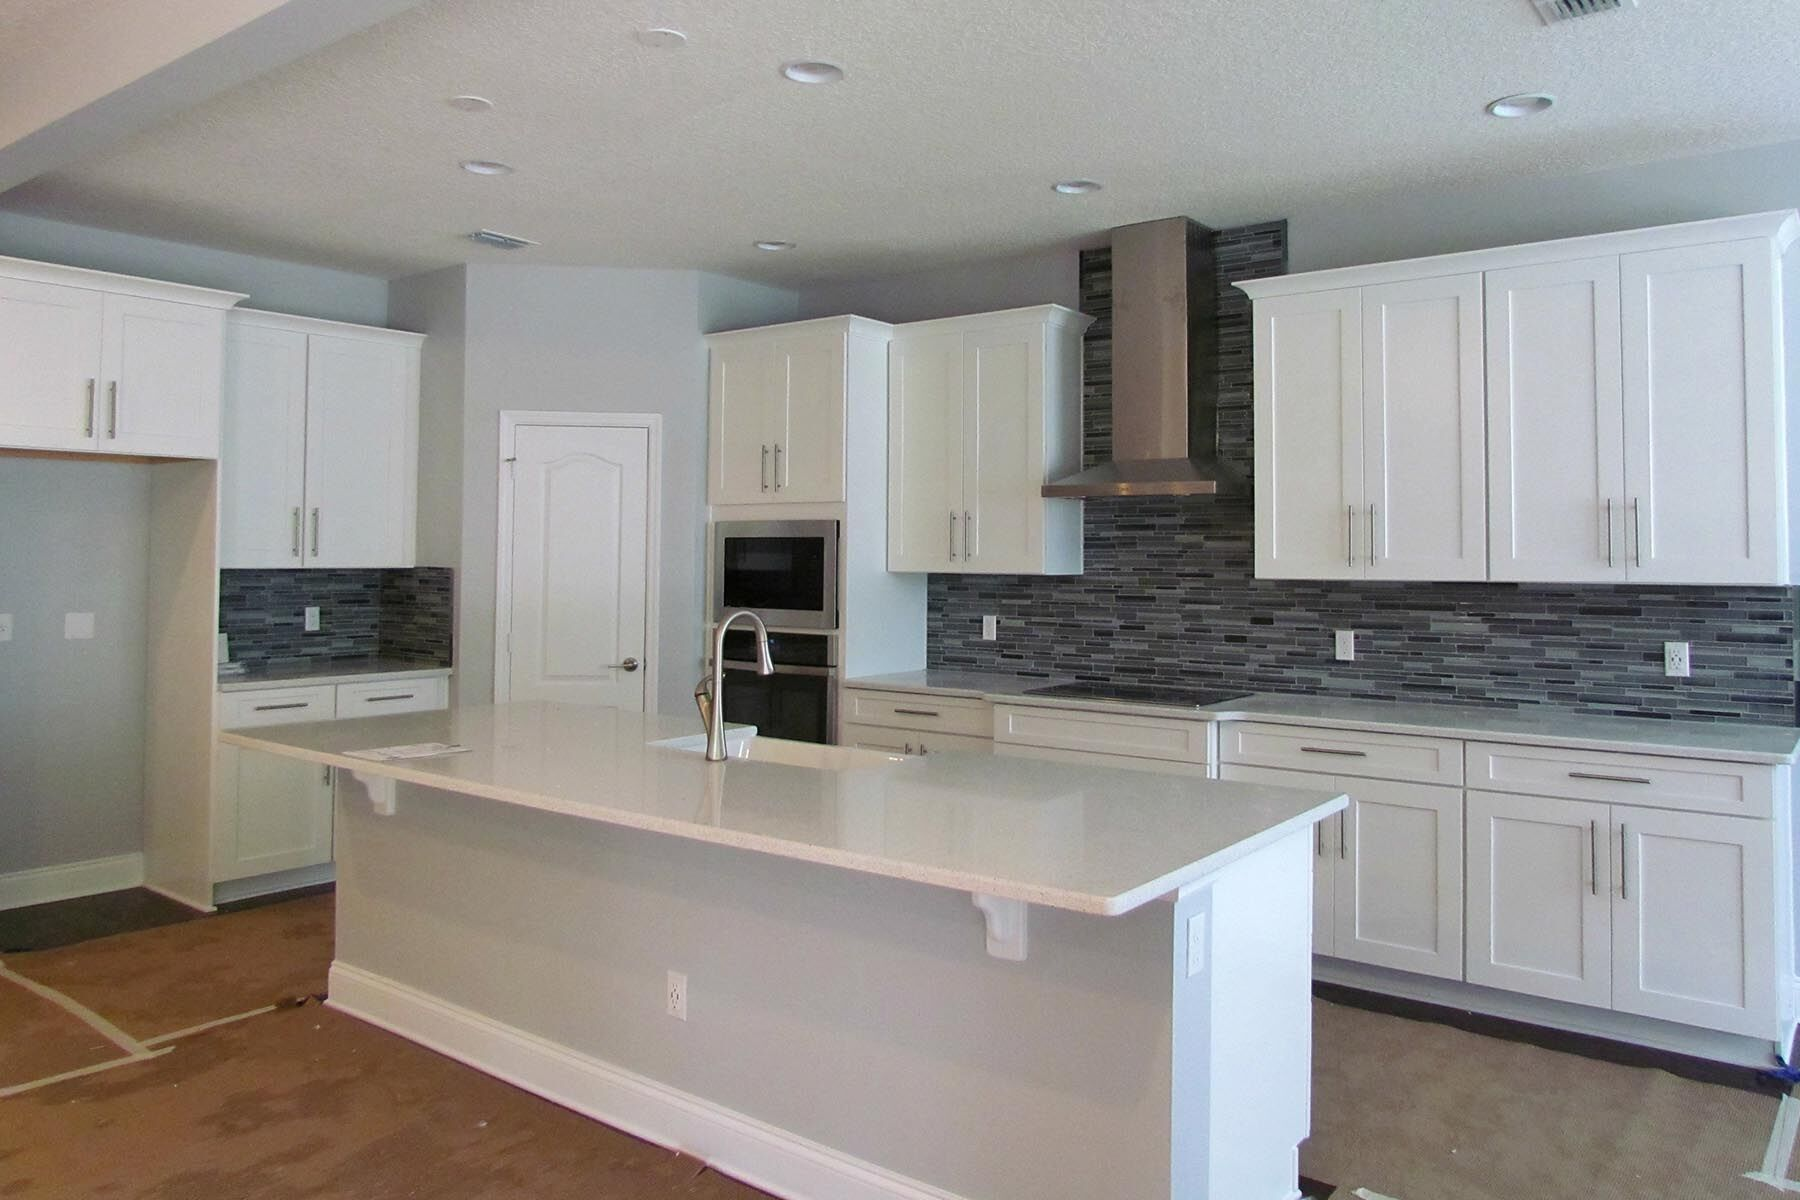 Kitchen featured in the Savannah II By M/I Homes in Orlando, FL